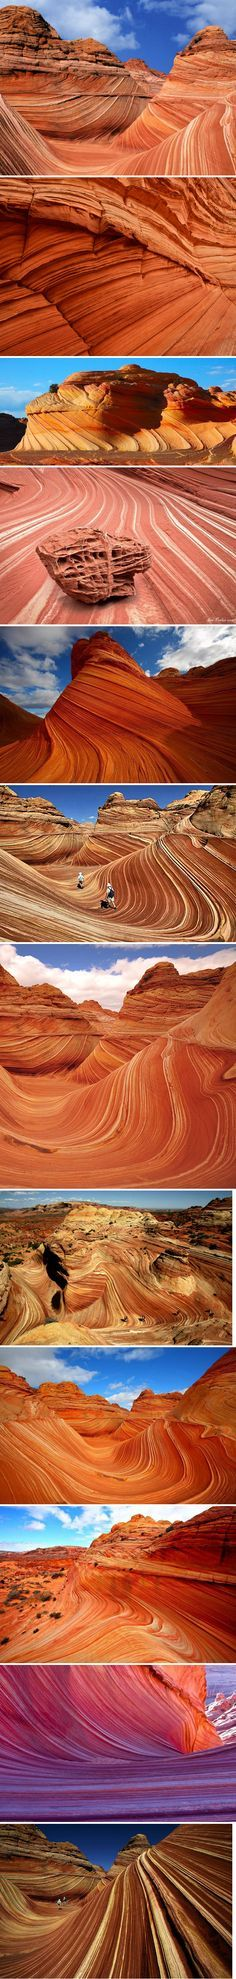 *ARIZONA~The Wave is a sandstone rock formation located in the United States of America near the Arizona and Utah border on the slopes of the Coyote Buttes, in the Paria Canyon-Vermilion Cliffs Wilderness, on the Colorado Plateau. It is famous among hikers and photographers for its colorful, undulating forms, and the rugged, trackless hike required to reach it.